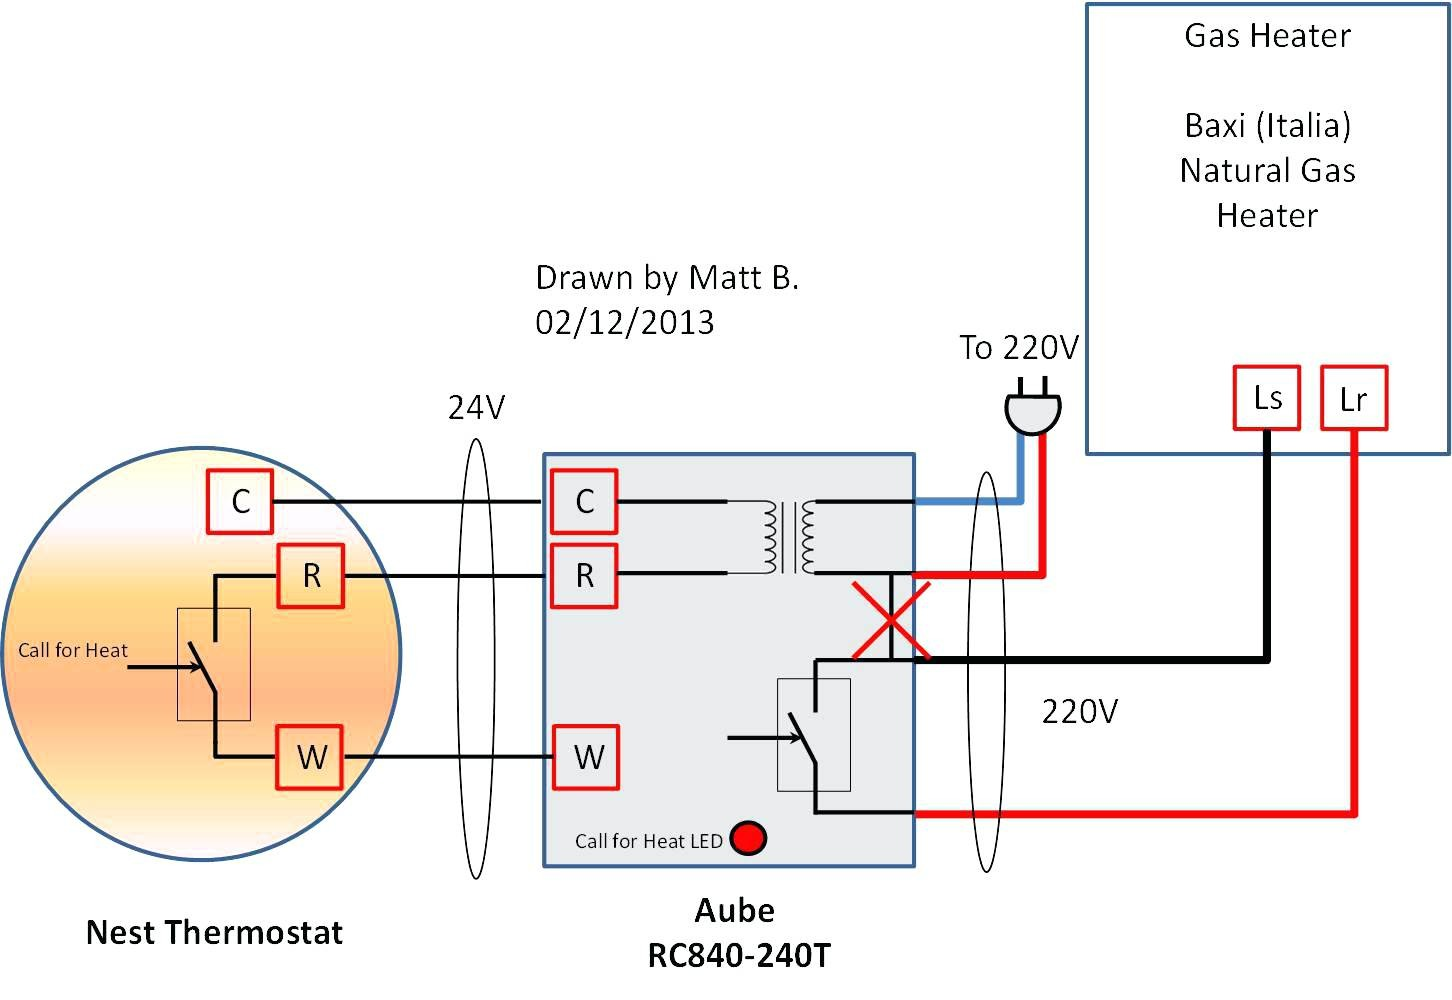 Nest Thermostat Wiring Diagram Unique Wiring Diagram Image - Nest thermostat wiring diagram